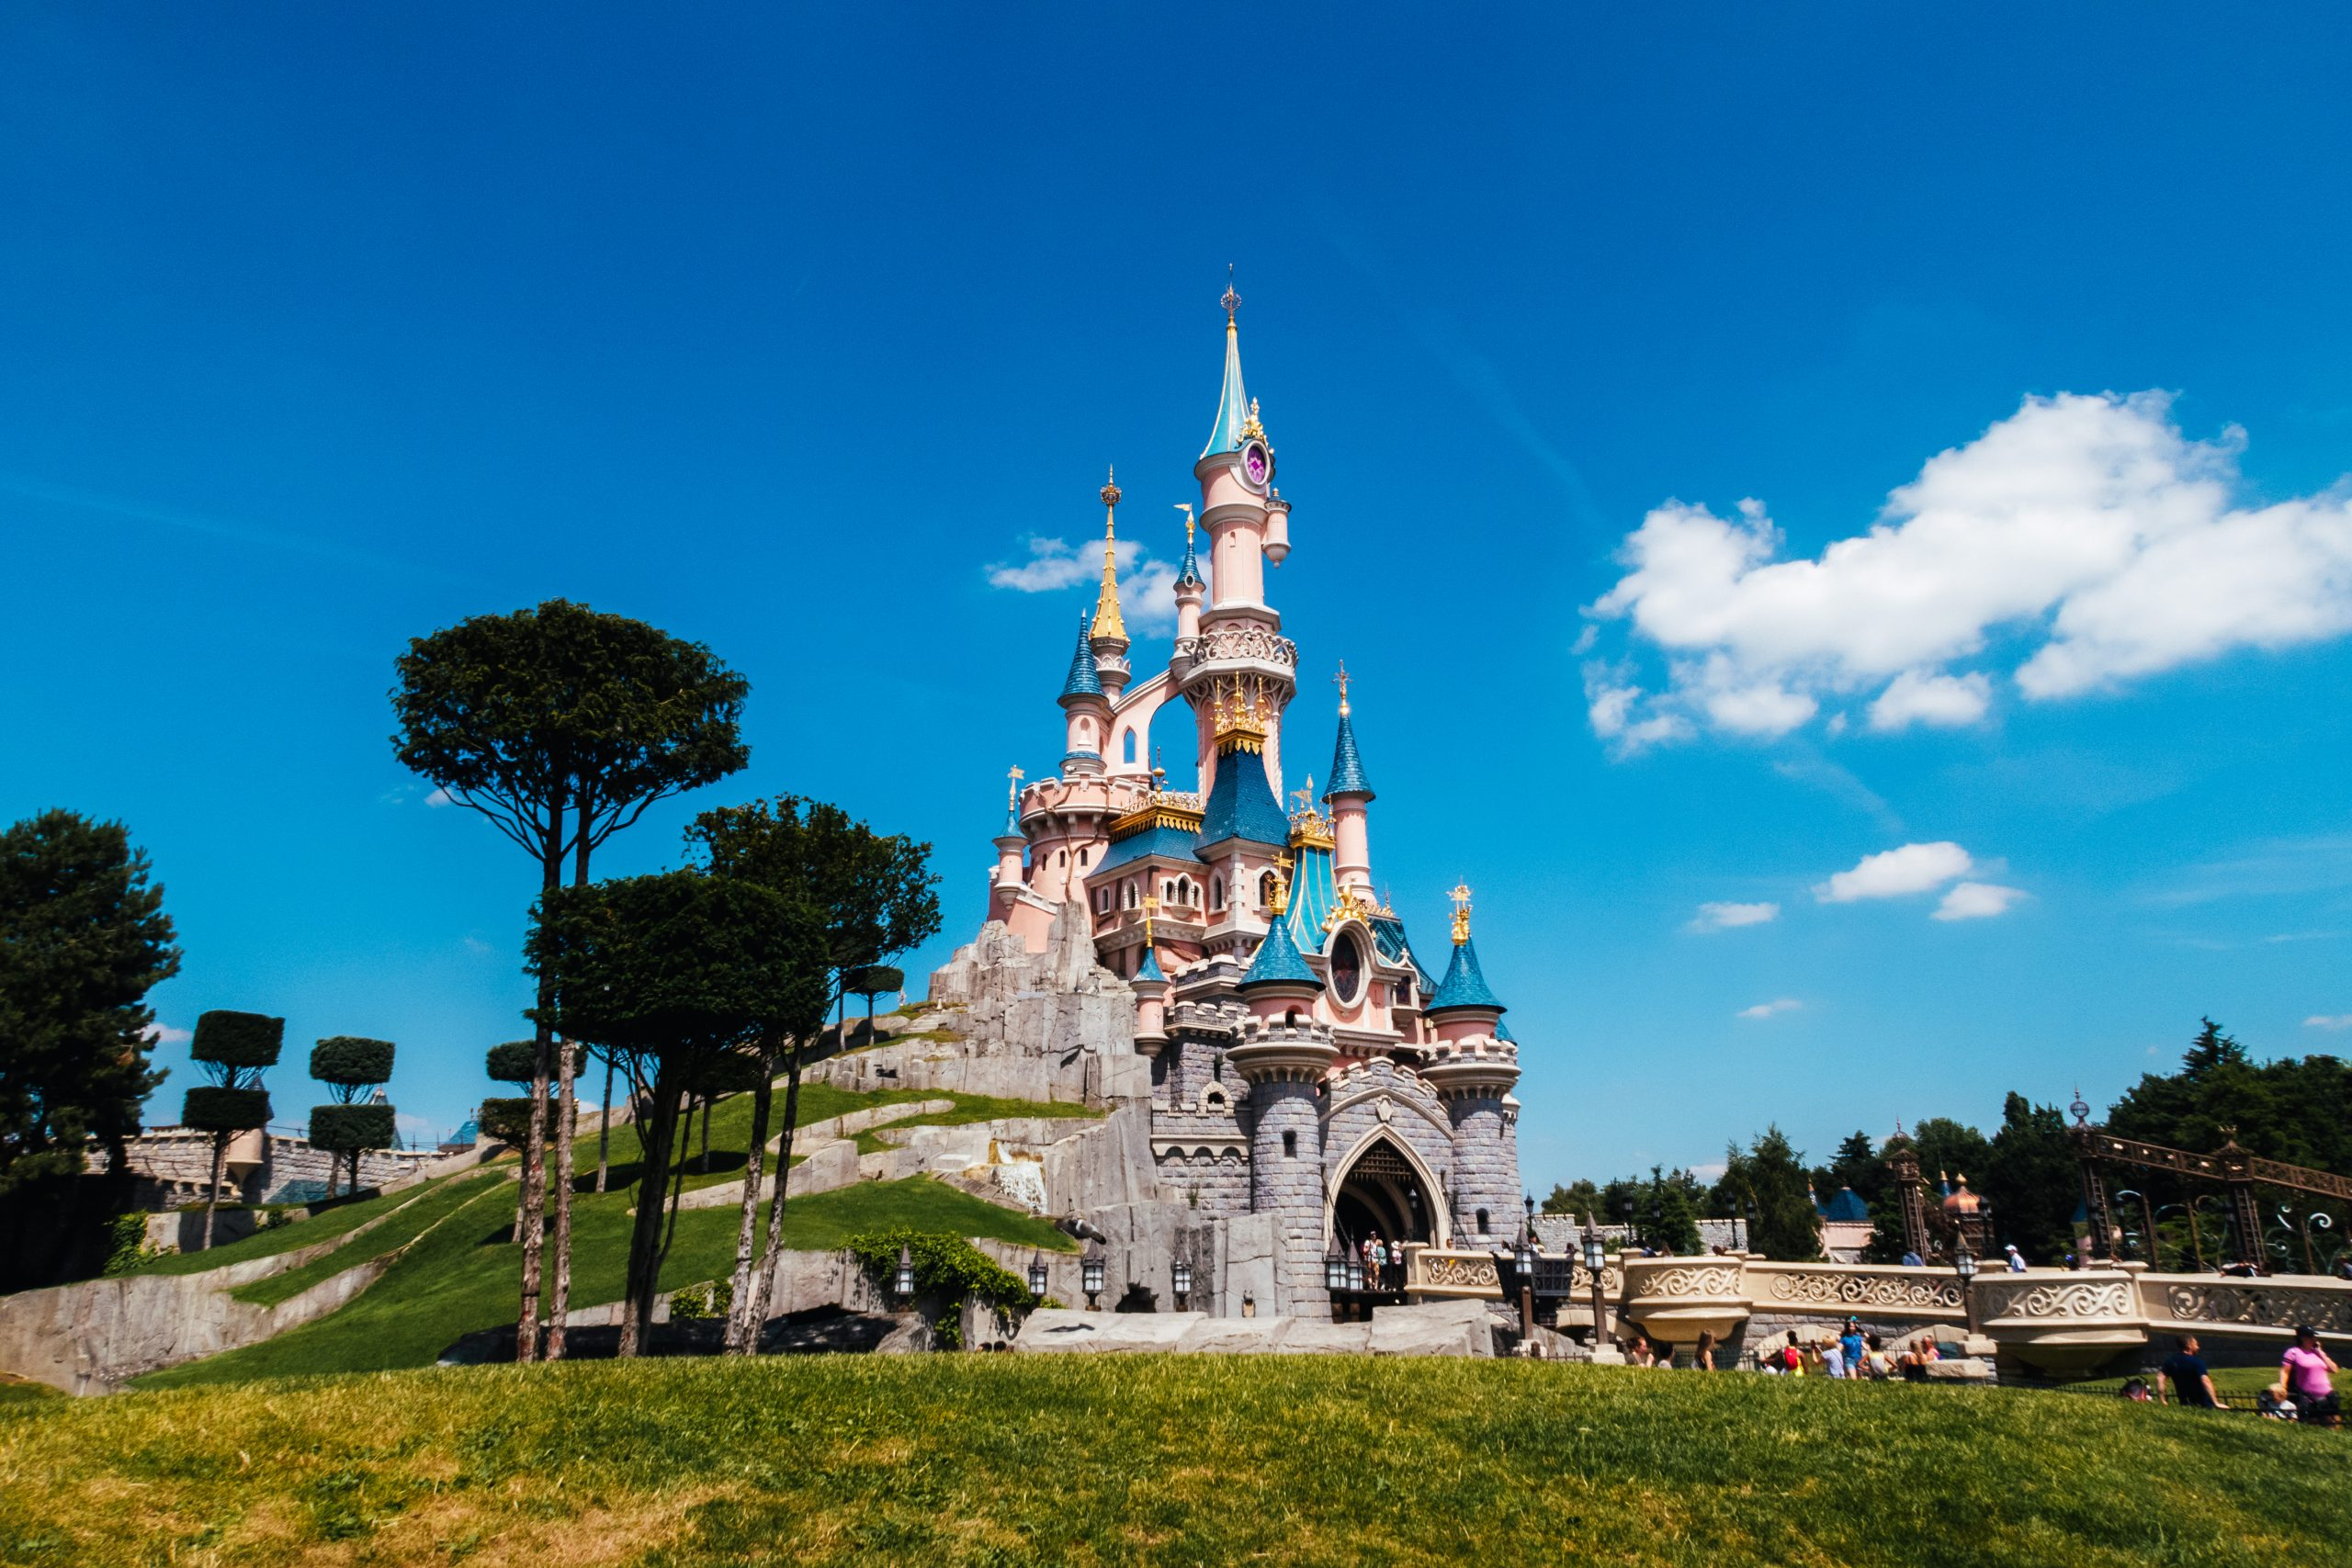 Disneyland Paris castle on a warm summers day